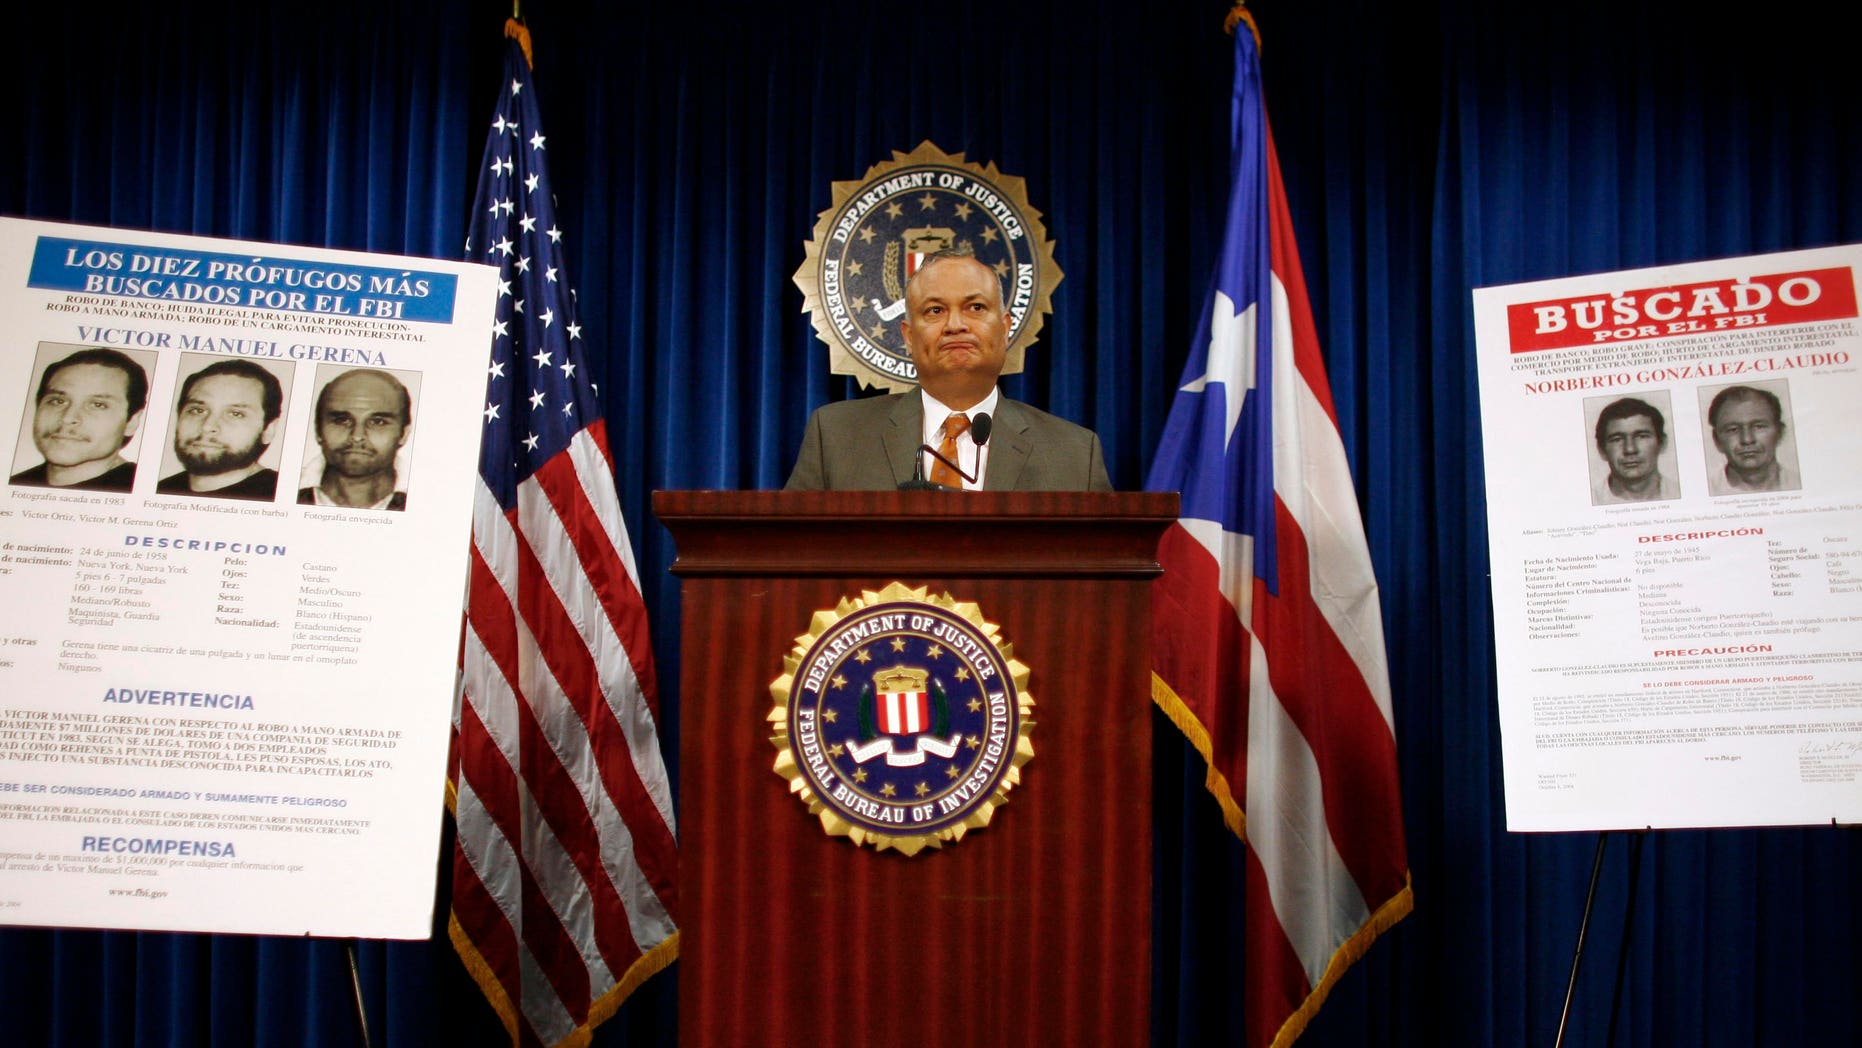 Puerto Rico's top FBI official Luis Fraticelli stands next to a wanted poster showing Norberto Gonzalez Claudio, right, at a news conference after Claudio's arrest, at FBI headquarters in San Juan, Tuesday May 10, 2011. The poster on left shows Victor Manuel Gerena who the FBI believes is living in Cuba. Claudio and Gerena are two of three alleged Puerto Rican militants sought in a 1983 Connecticut robbery that according to authorities was among the largest in U.S. history at the time. (AP Photo/Ricardo Arduengo))